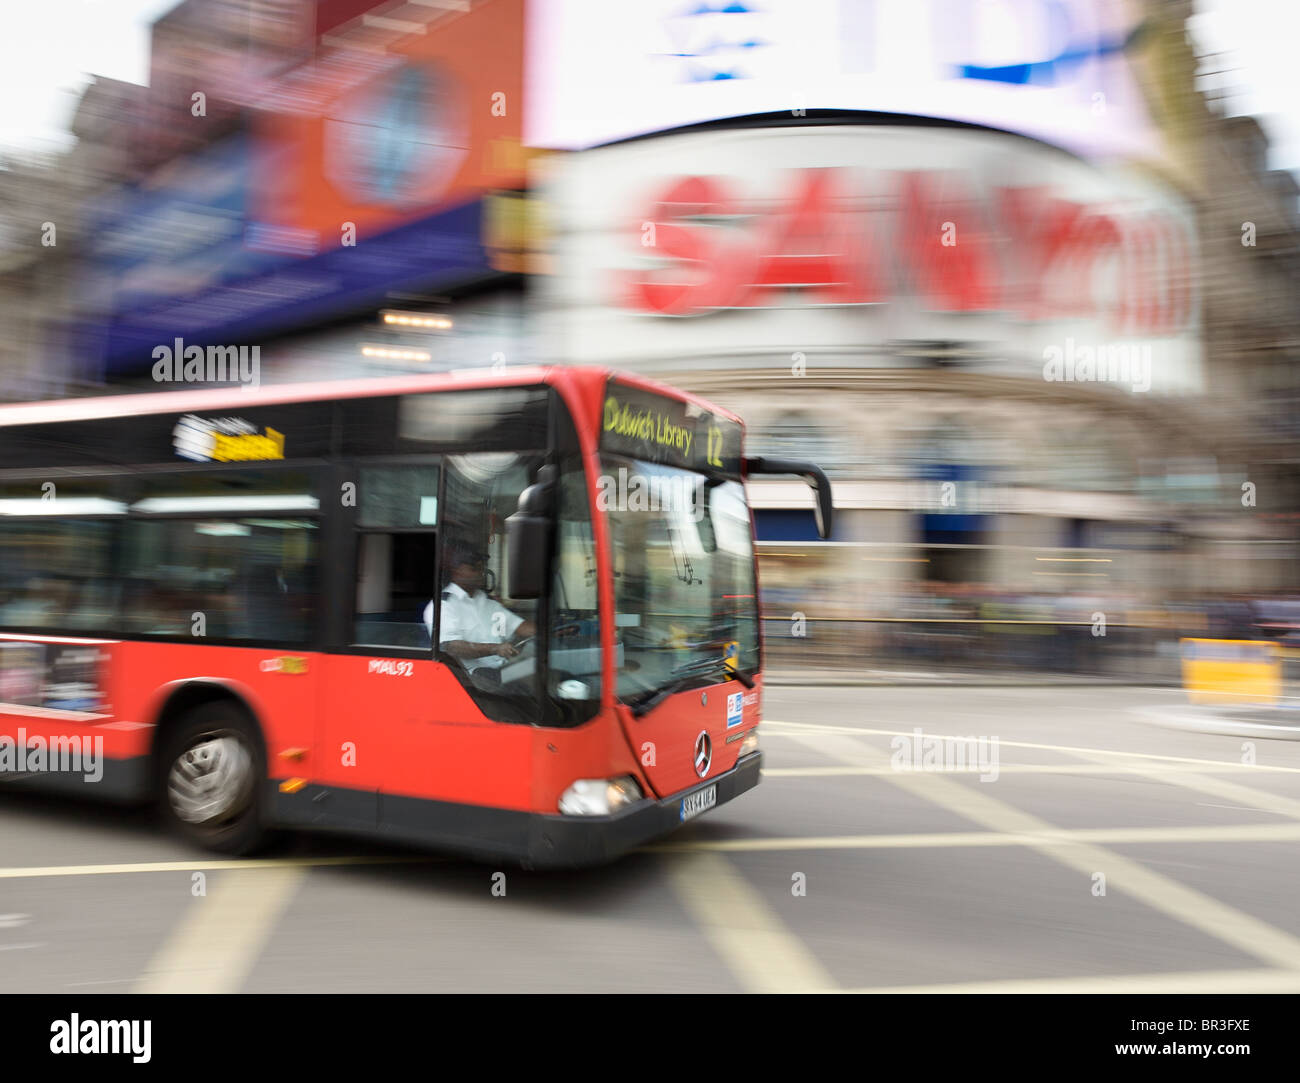 London bus at speed through Piccadilly Circus - Stock Image